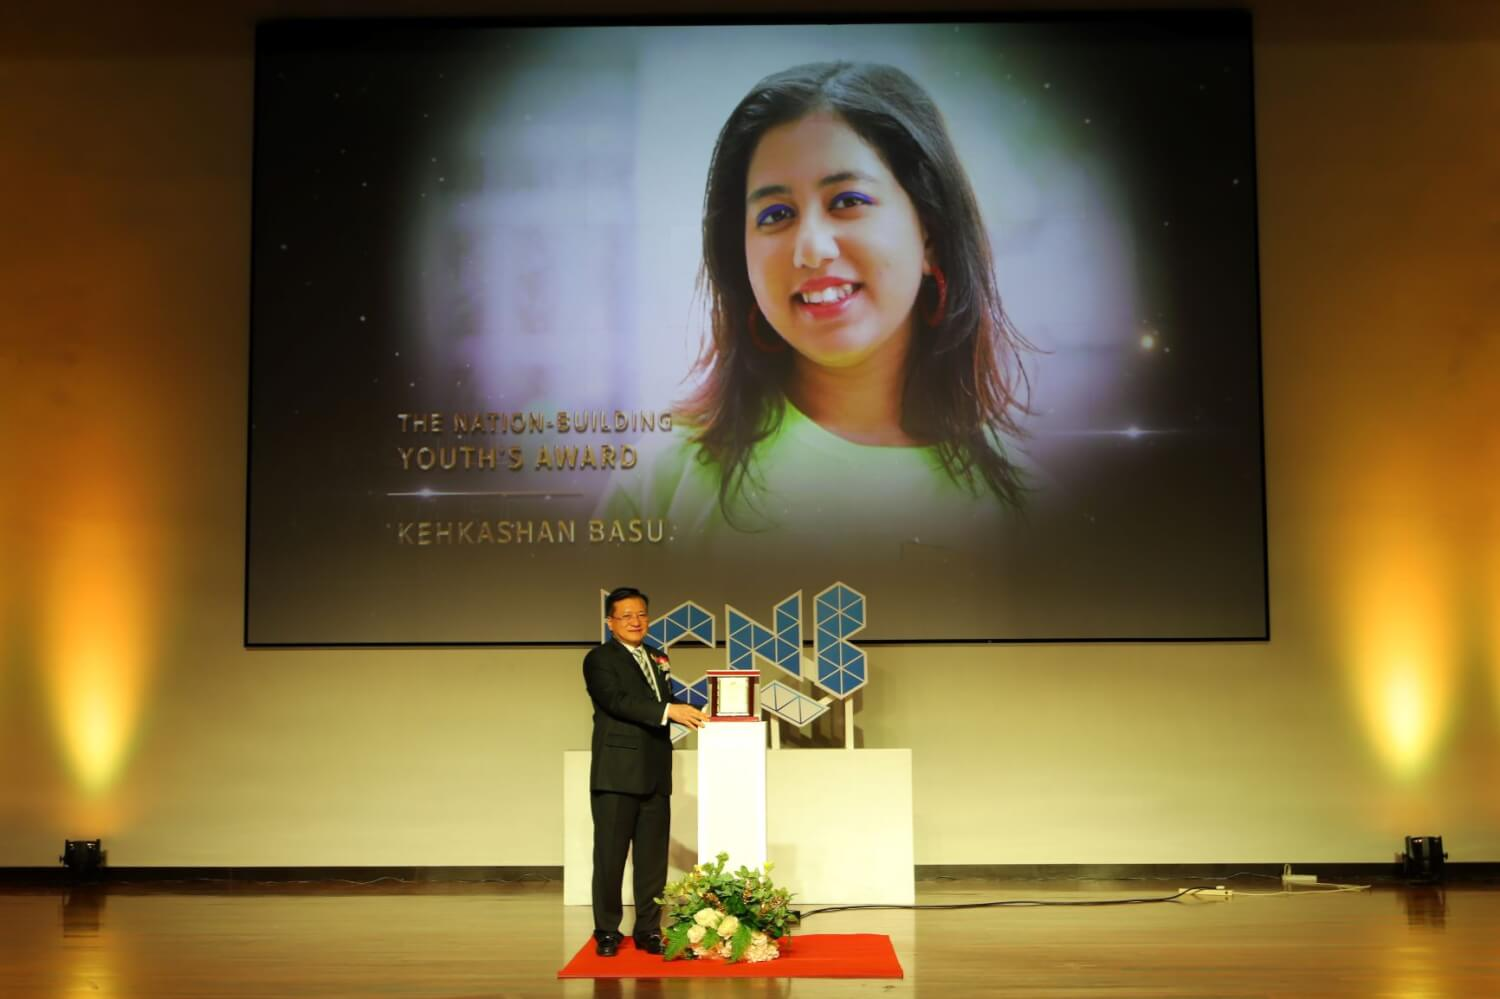 The Nation-Building Youth's Award, Thailand